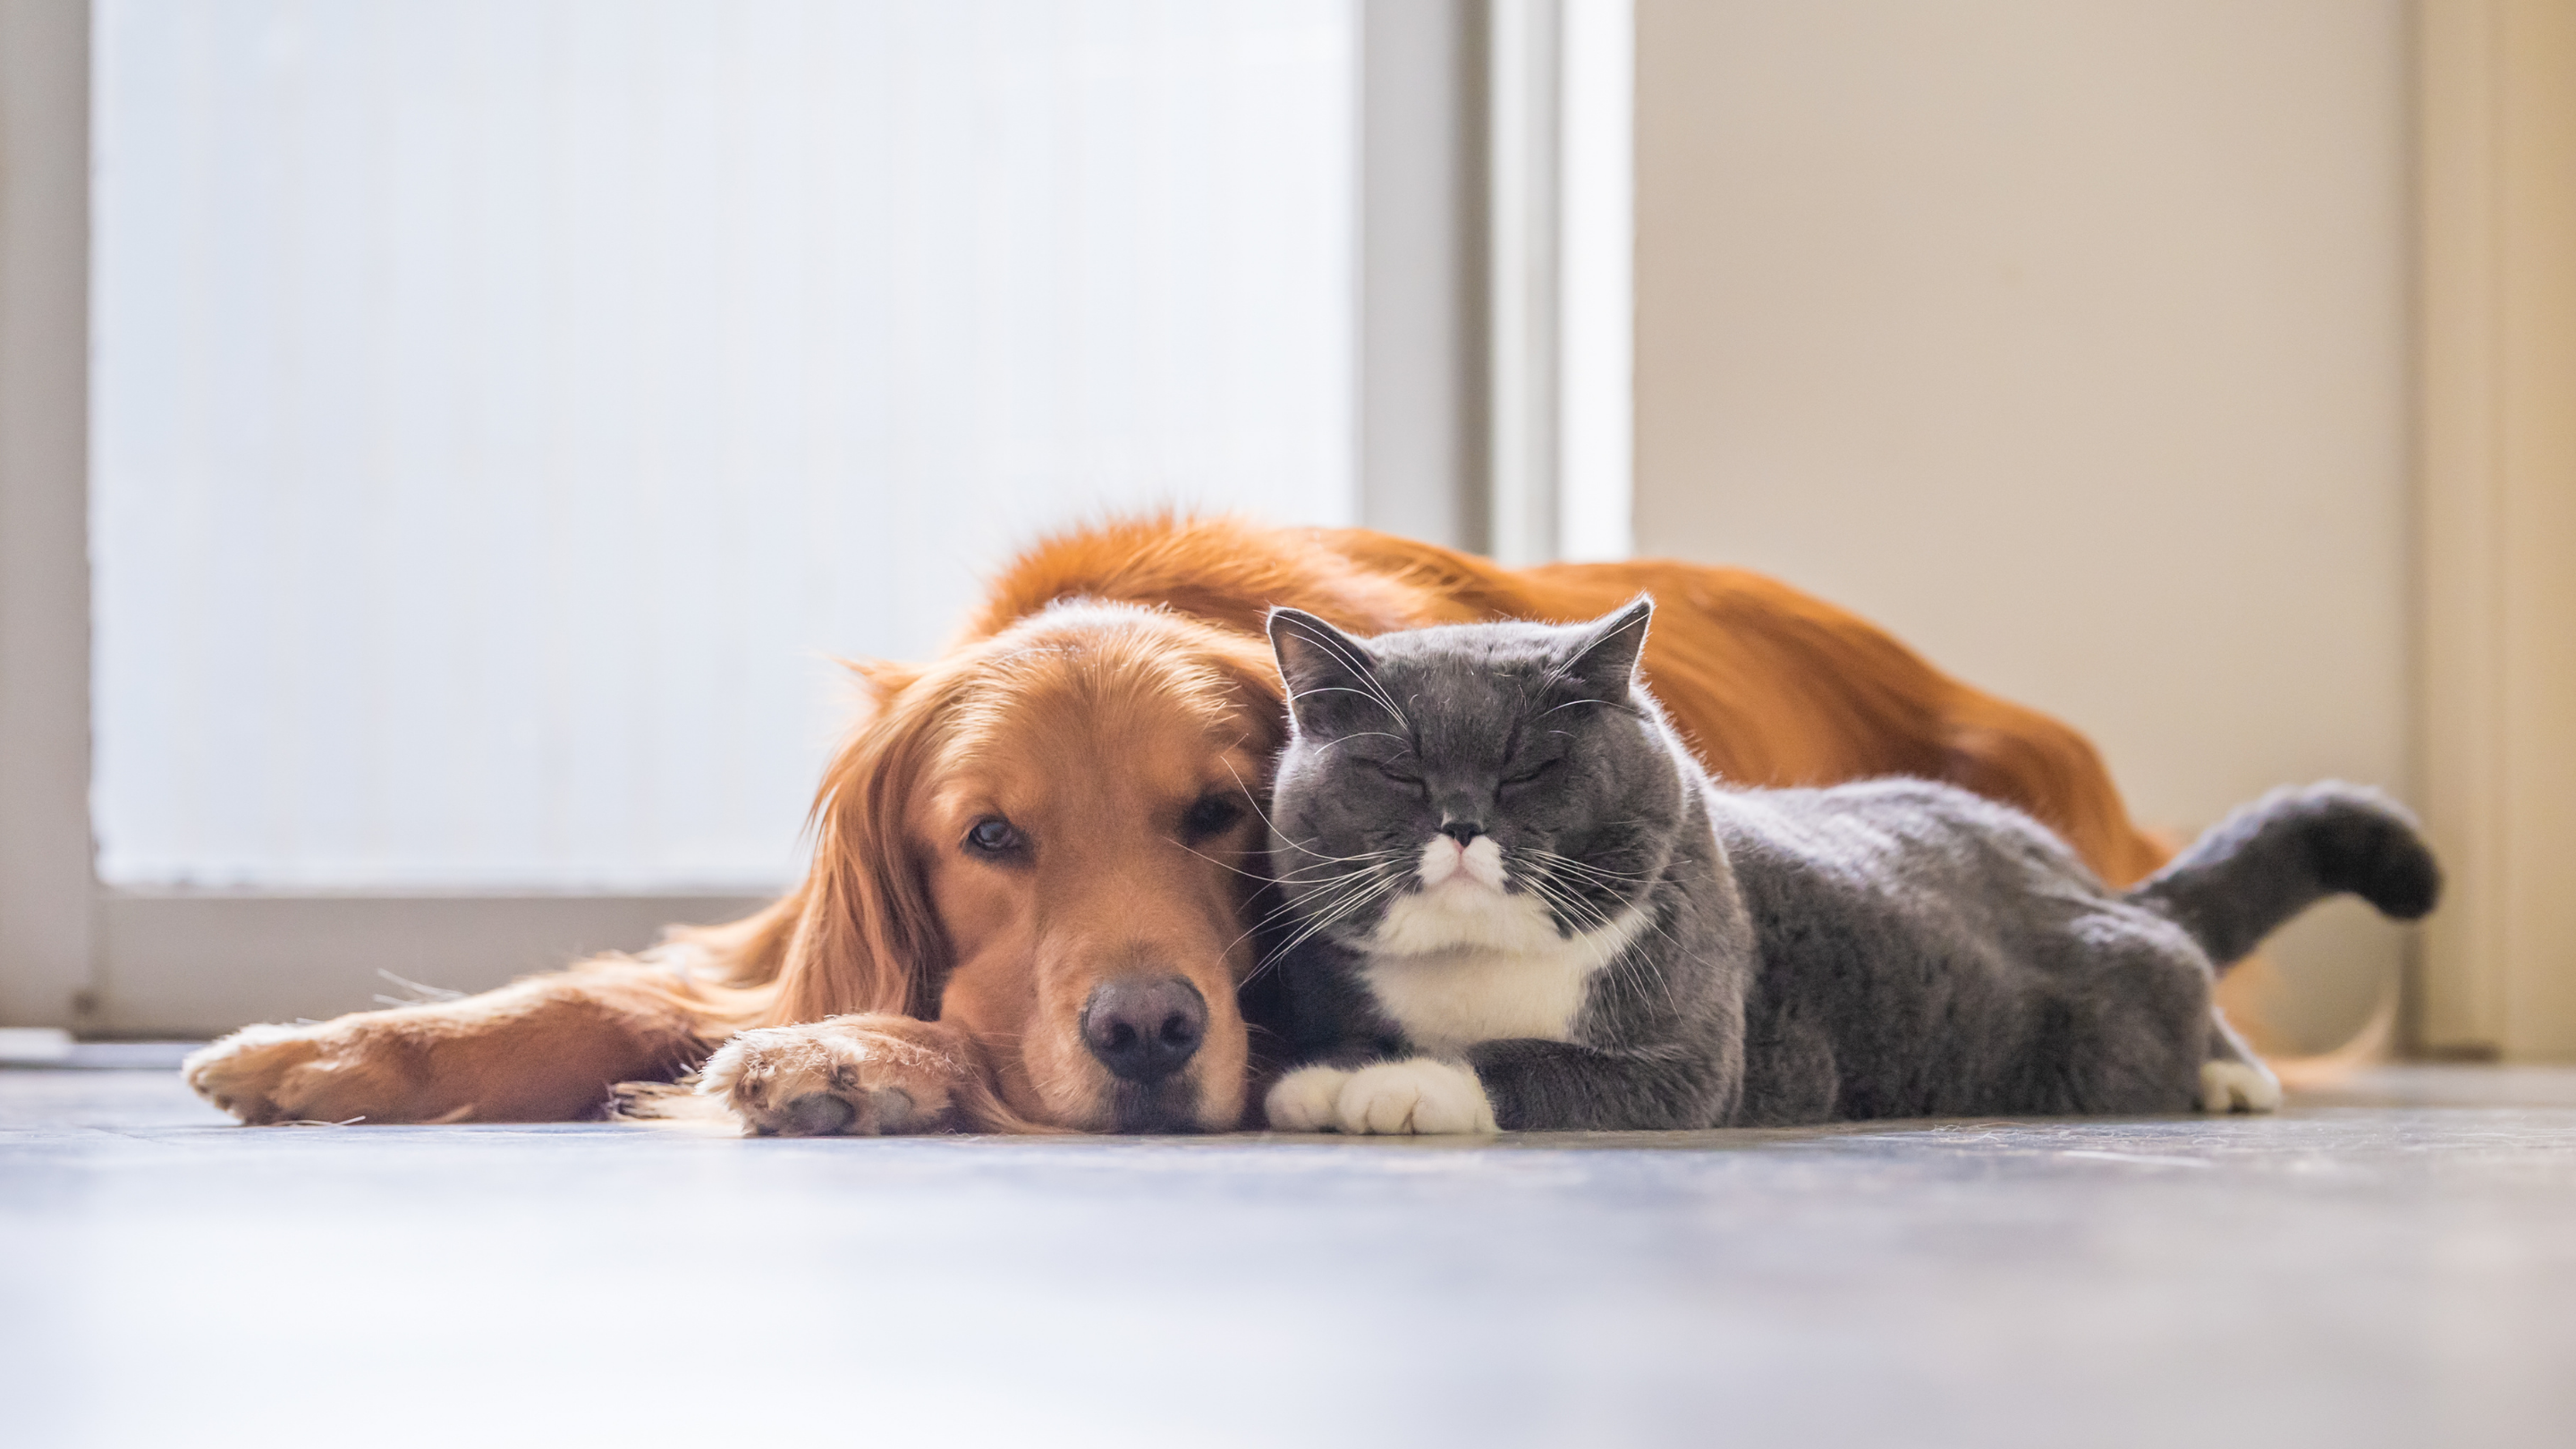 A dog and cat snuggle together in a sunny room